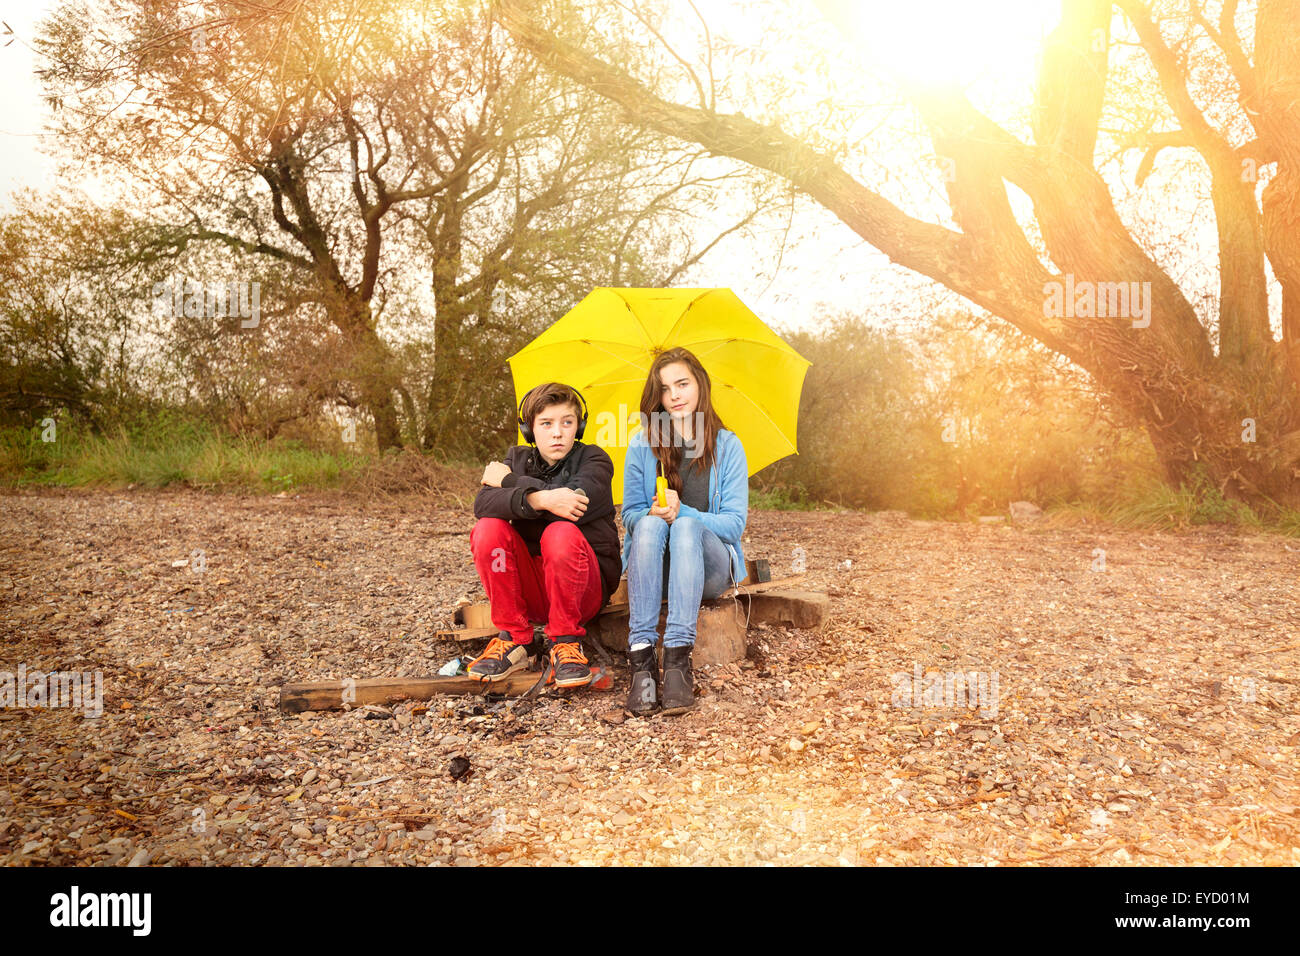 two teenager with umbrella sitting on a dirty beach with sun in background - Stock Image